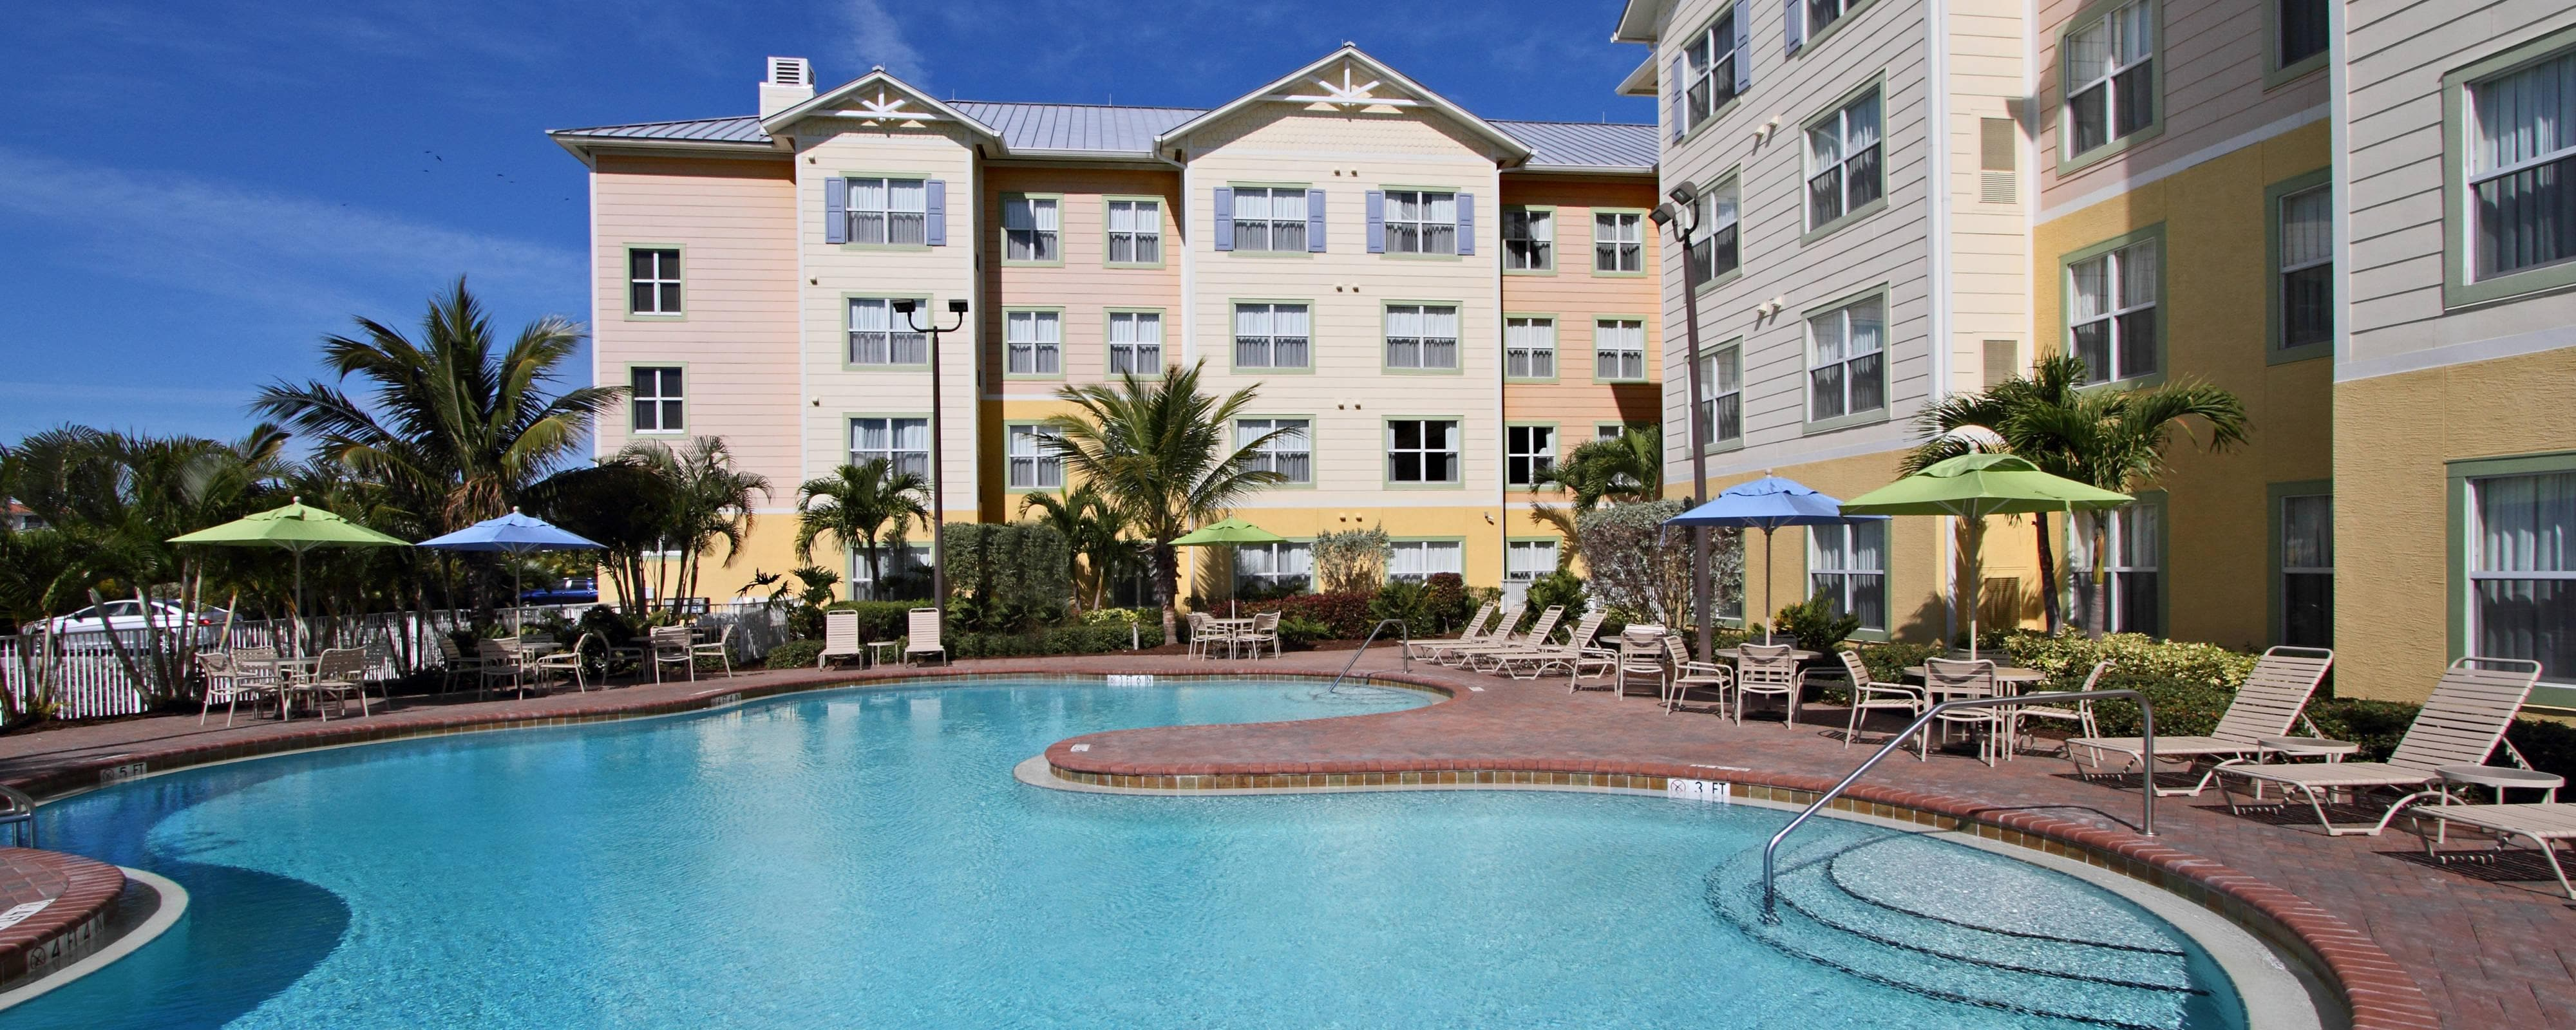 Port Canaveral Hotel Directions and Map – Residence Inn Port ... on longboat key hotel map, klamath falls hotel map, daytona hotel map, mitchell hotel map, albany hotel map, pensacola hotel map, overland park hotel map, ann arbor hotel map, jacksonville hotel map, georgetown hotel map, wichita hotel map, orange county convention center hotel map, punta gorda hotel map, kent hotel map, boca raton hotel map, gulfport hotel map, geneva hotel map, kalamazoo hotel map, edgewater hotel map, davenport hotel map,